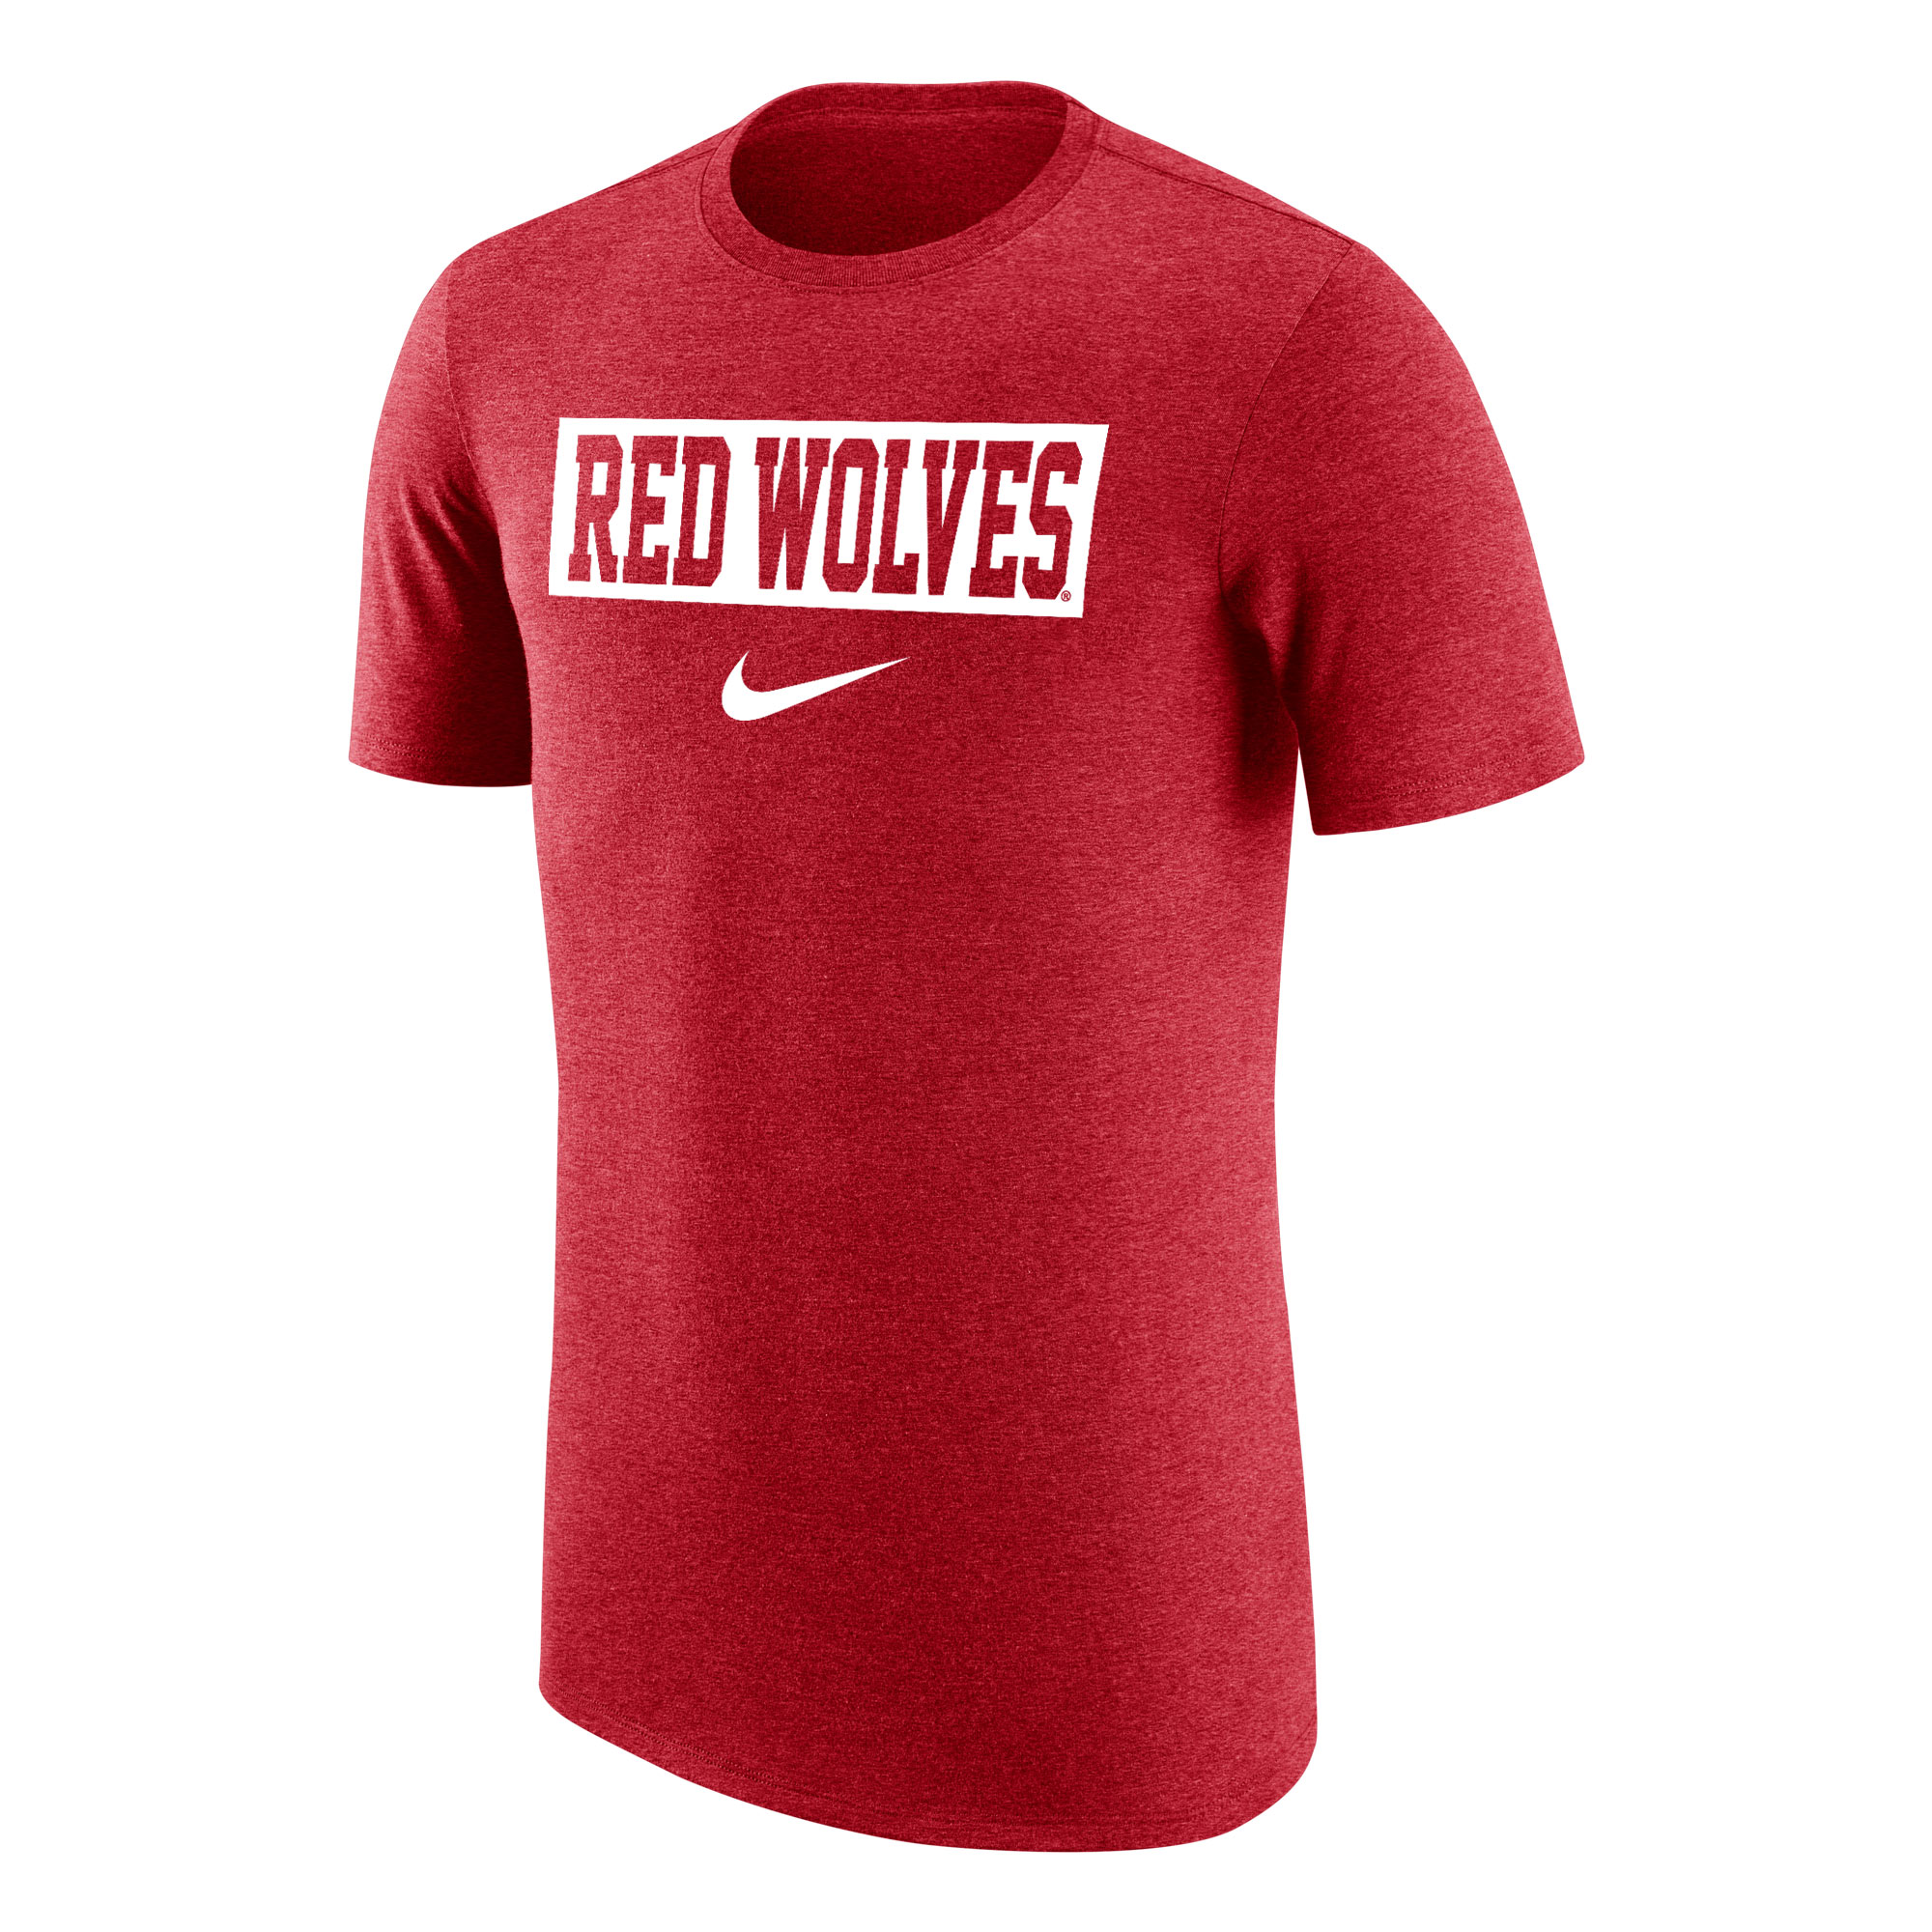 Red Wolves TriBlend SS Tee